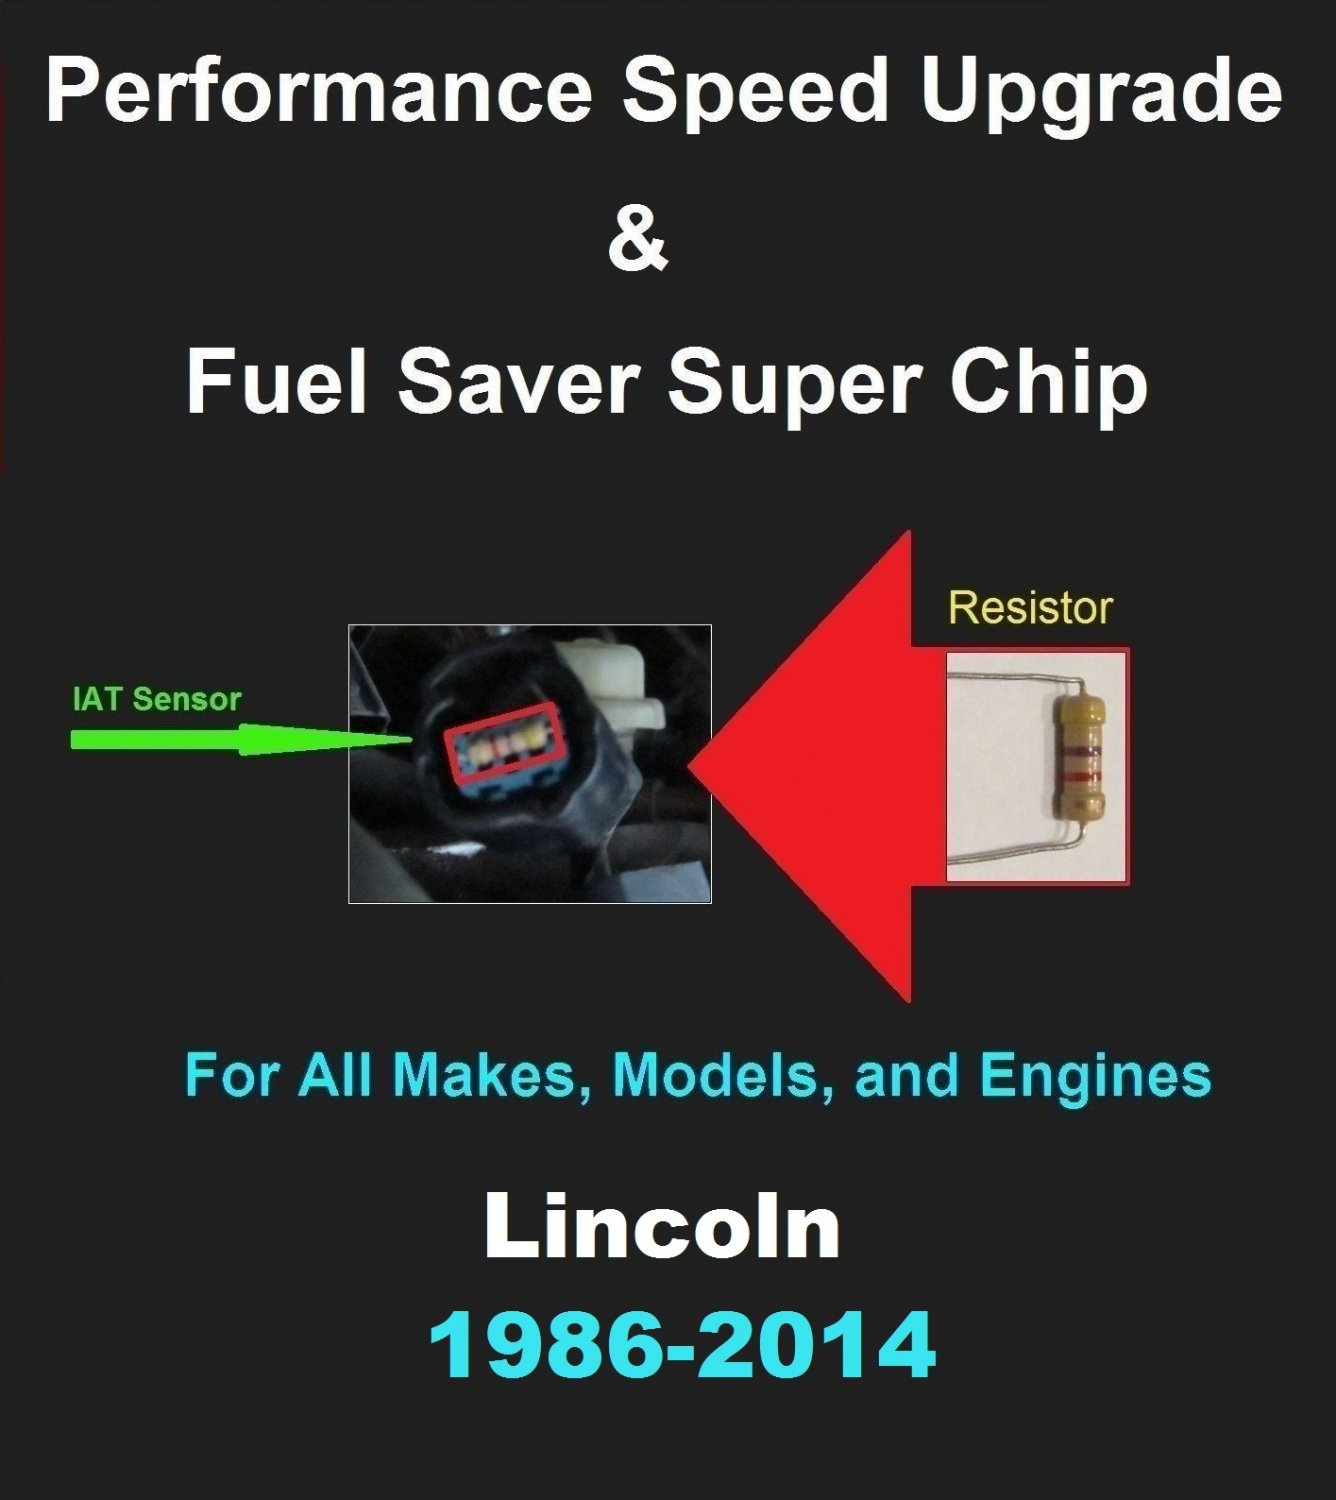 Lincoln Performance IAT Sensor Resistor Chip Mod Increase MPG HP Speed Power Super Fuel Gas Saver